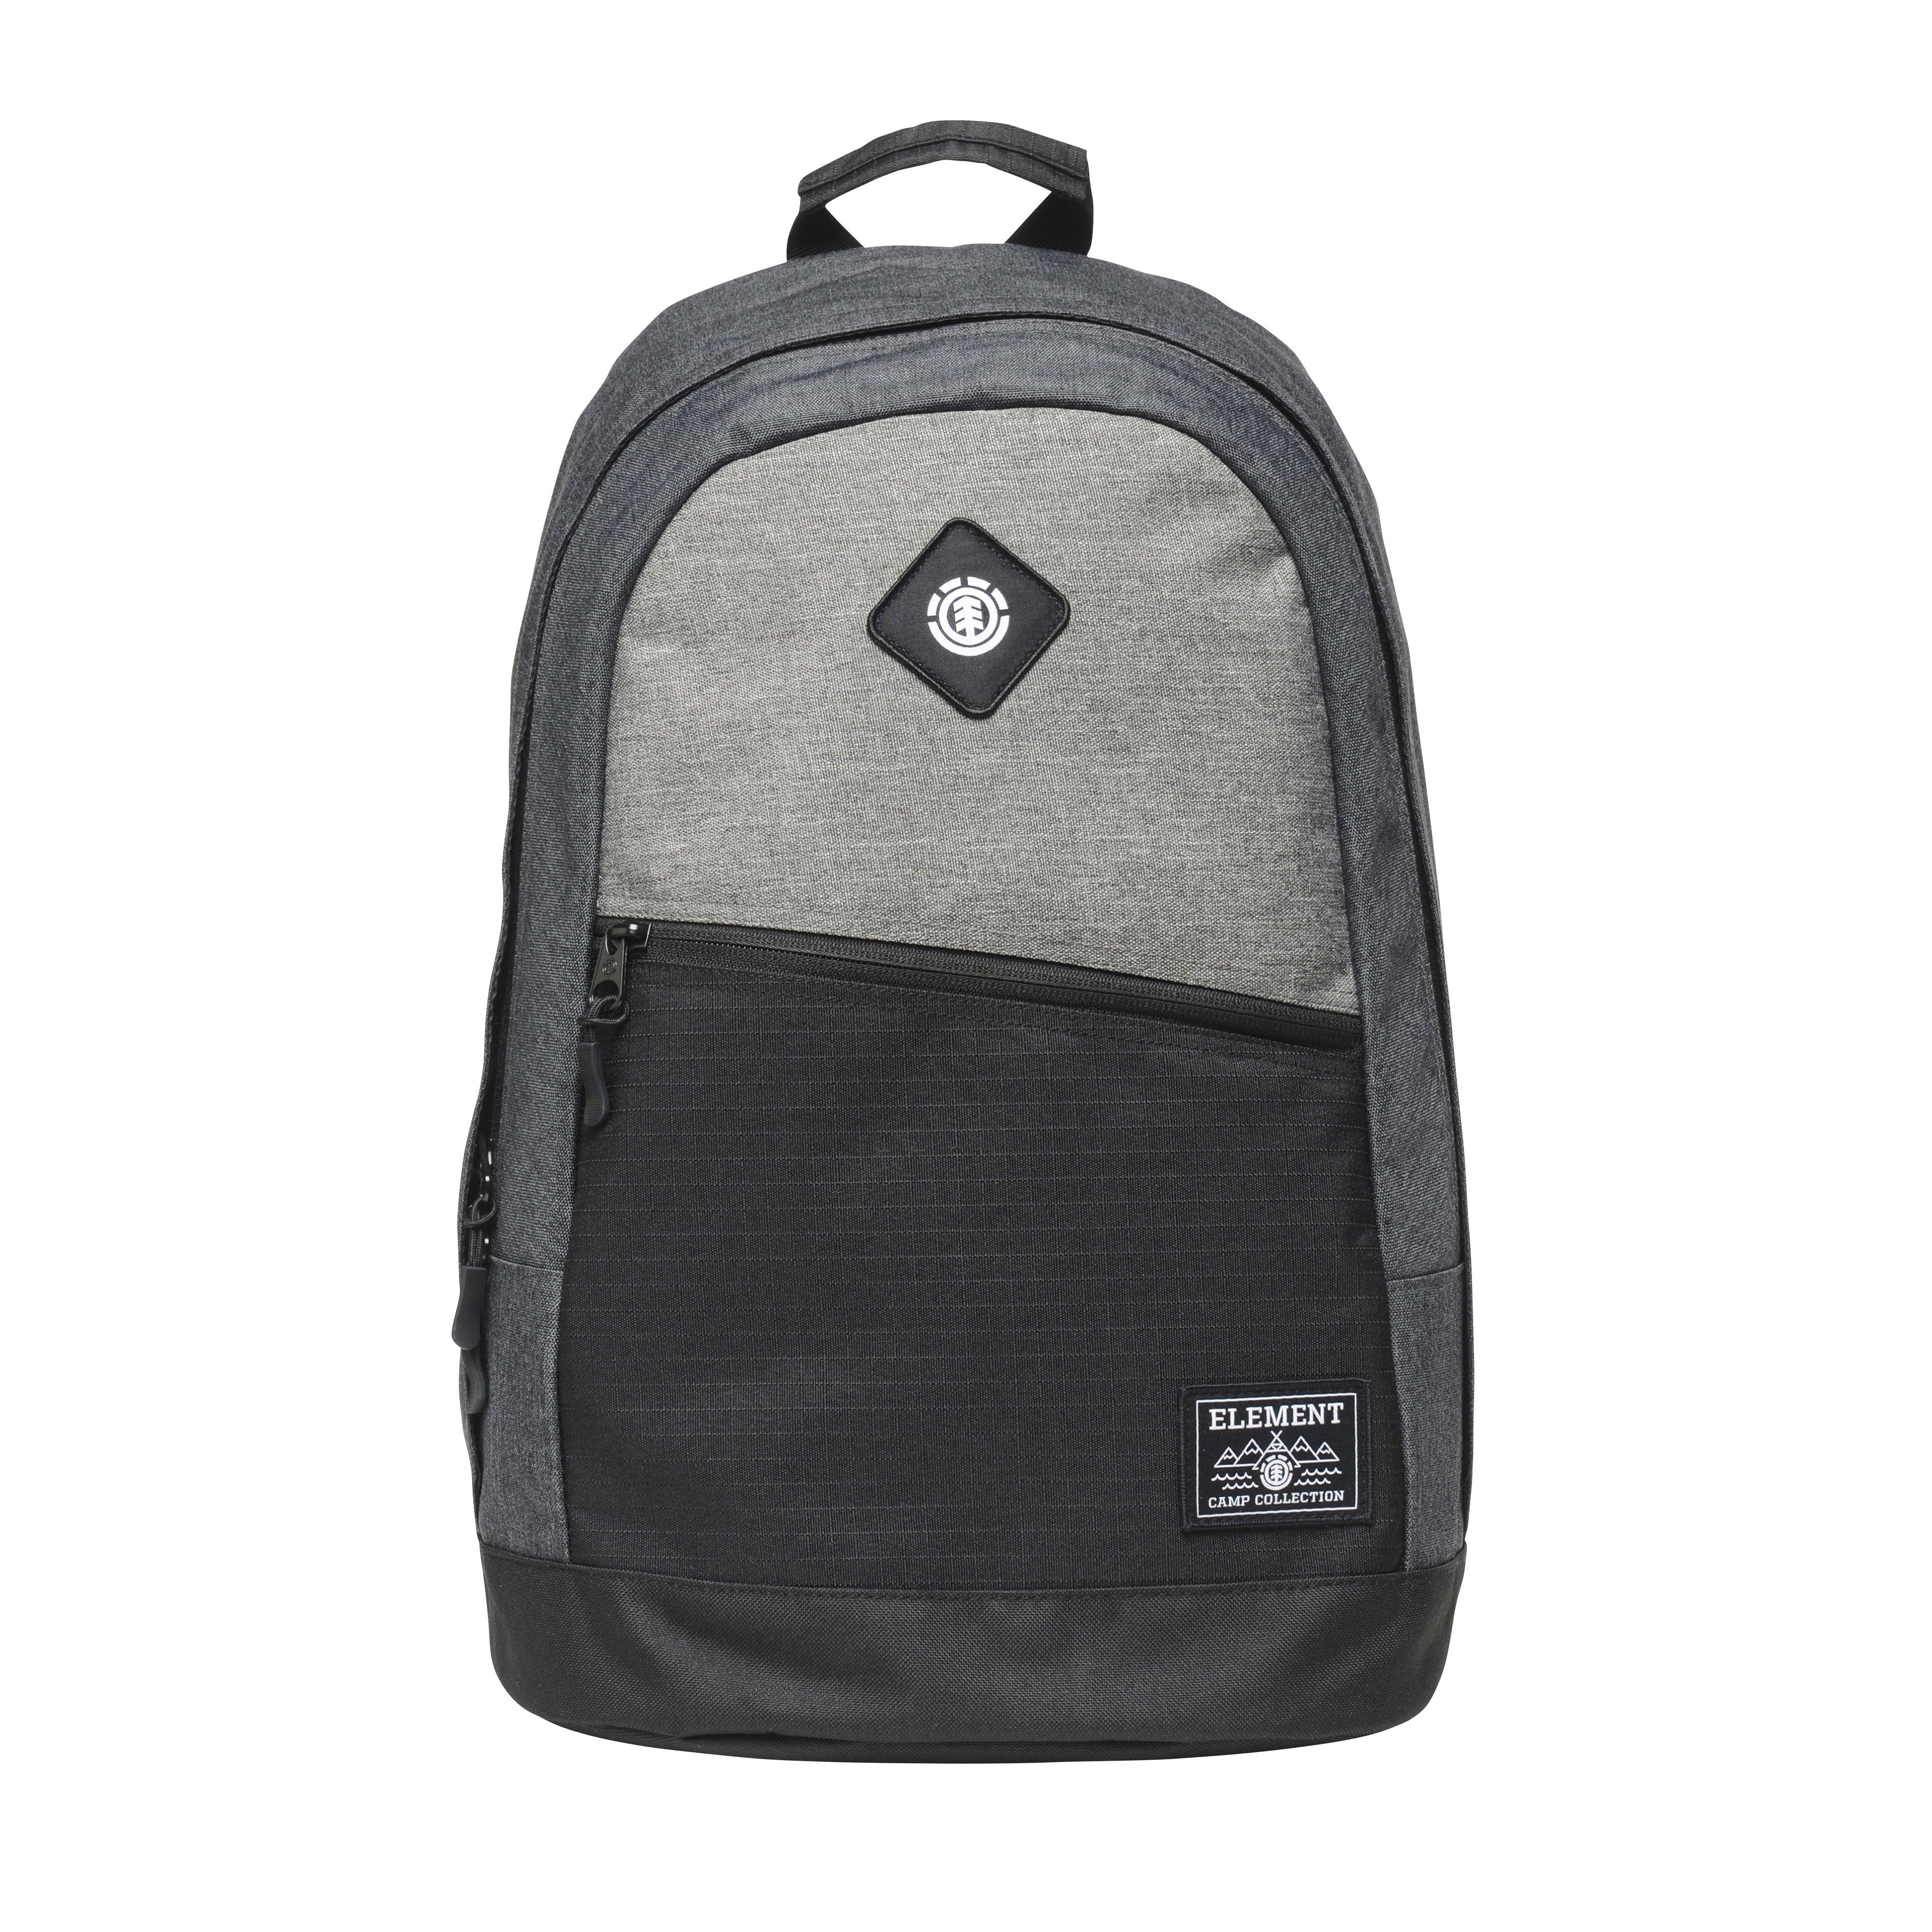 Element Back Pack, Charcoal